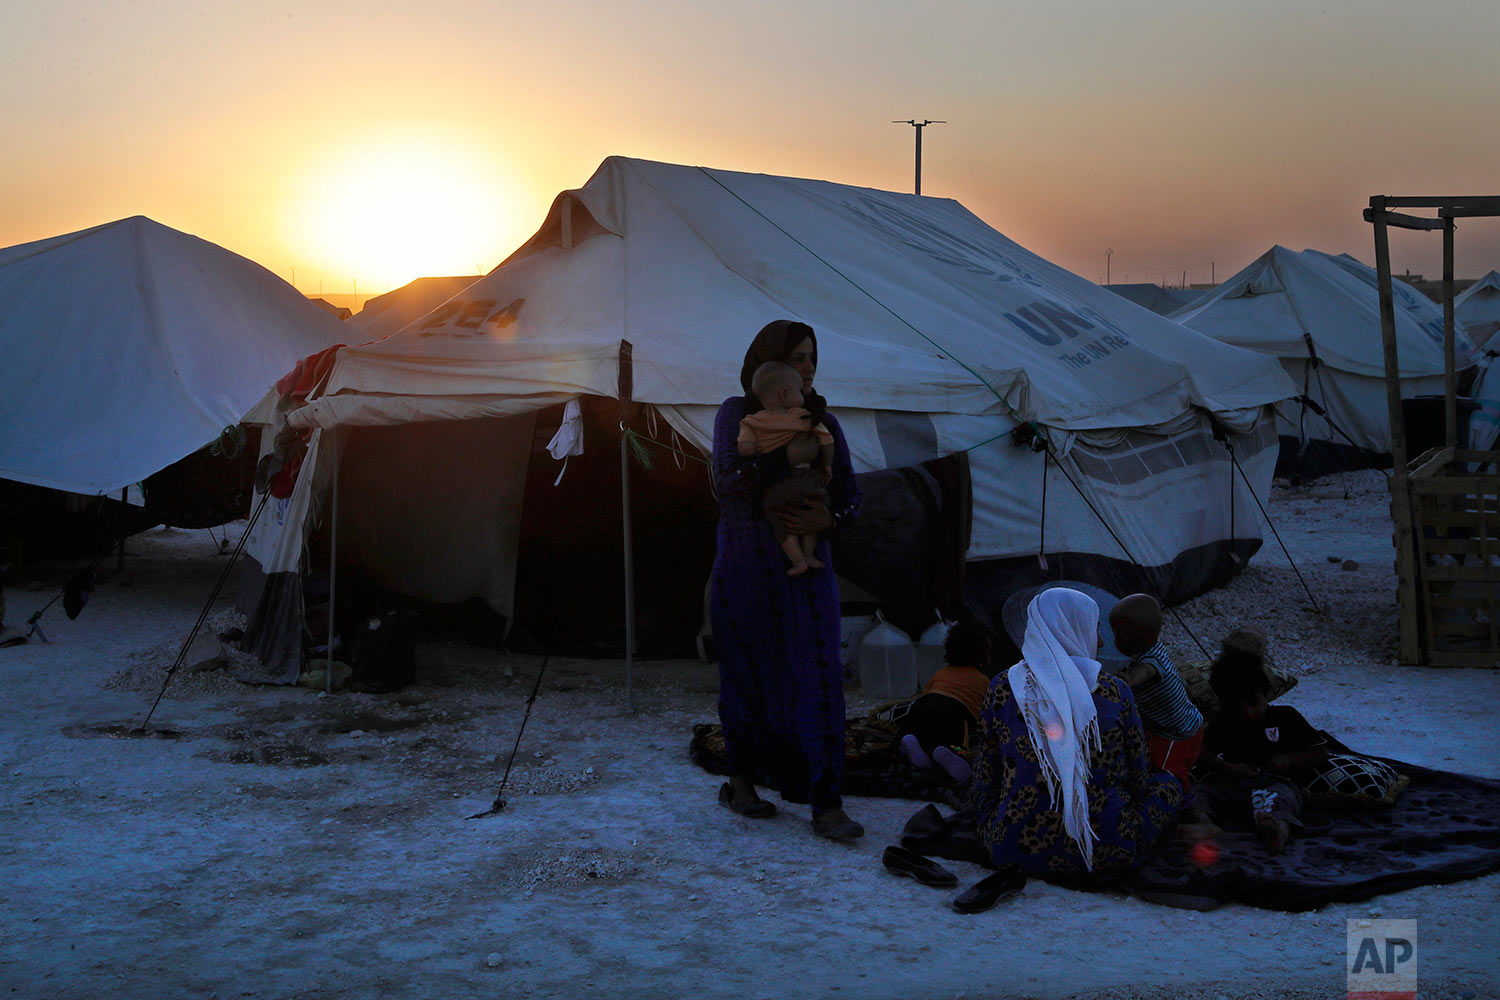 A family who fled from Raqqa the battle between U.S.-backed Syrian Democratic Forces and the Islamic State militants, sit outside their tent at a refugee camp, in Ain Issa, northeast Syria, Wednesday, July 19, 2017. (AP Photo/Hussein Malla)